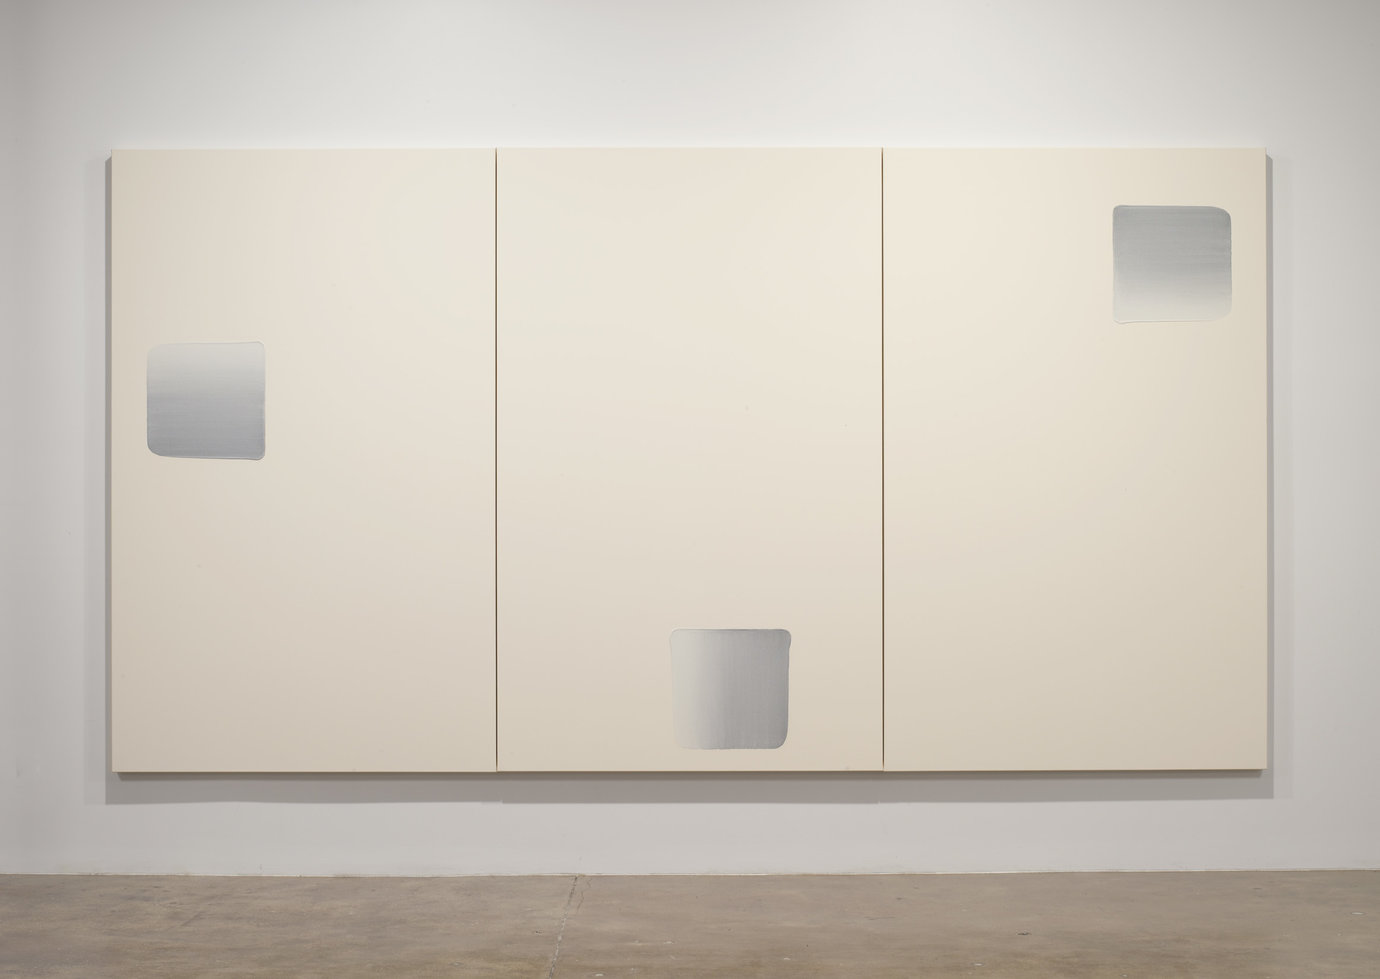 ", 2007. Oil on canvas, 7' 5-3/8"" x 14' 9"" (227 cm x 449.6 cm), overall installed7' 5-3/8"" x 4' 11"" (227 cm x 149.9 cm), 3 panels, each."